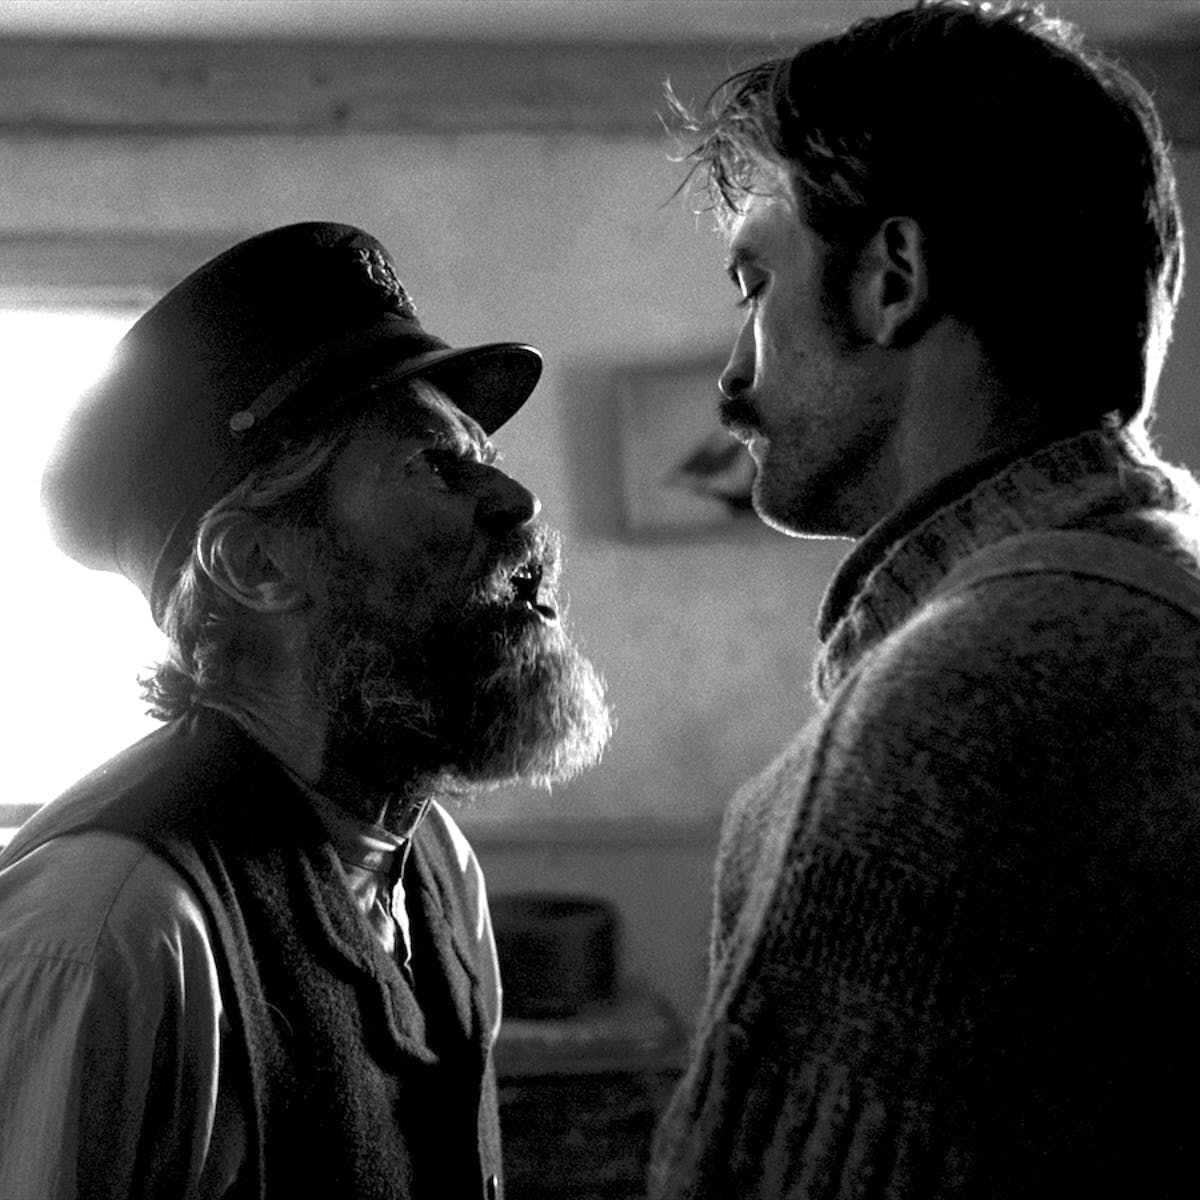 'The Lighthouse' spoilers: Ending explained by director Robert Eggers